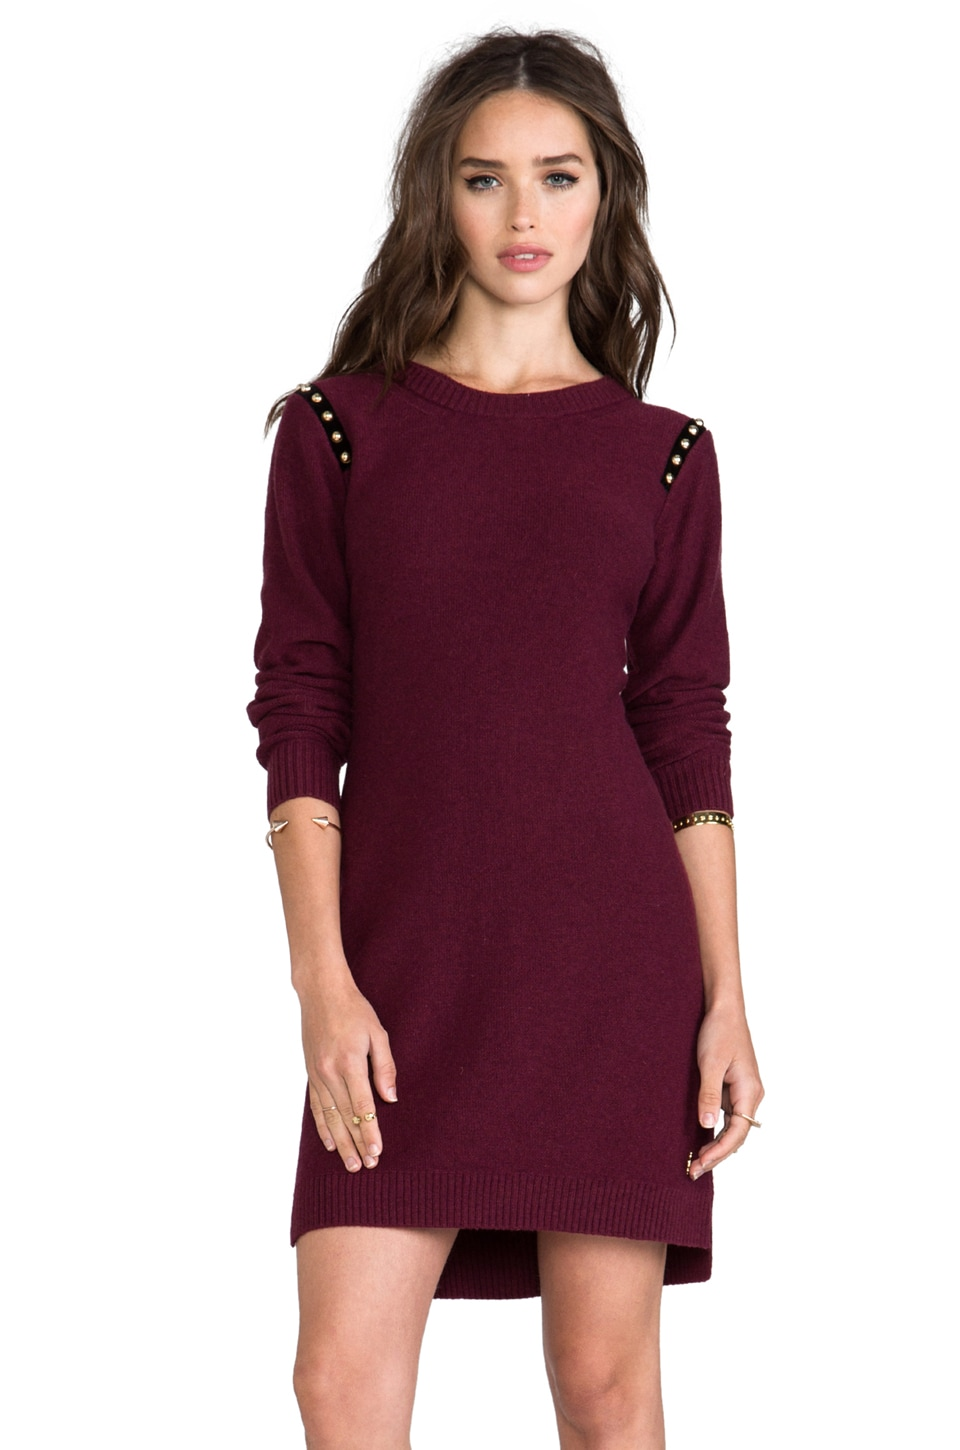 Juicy Couture Dress with Studded Shoulder in Mardi